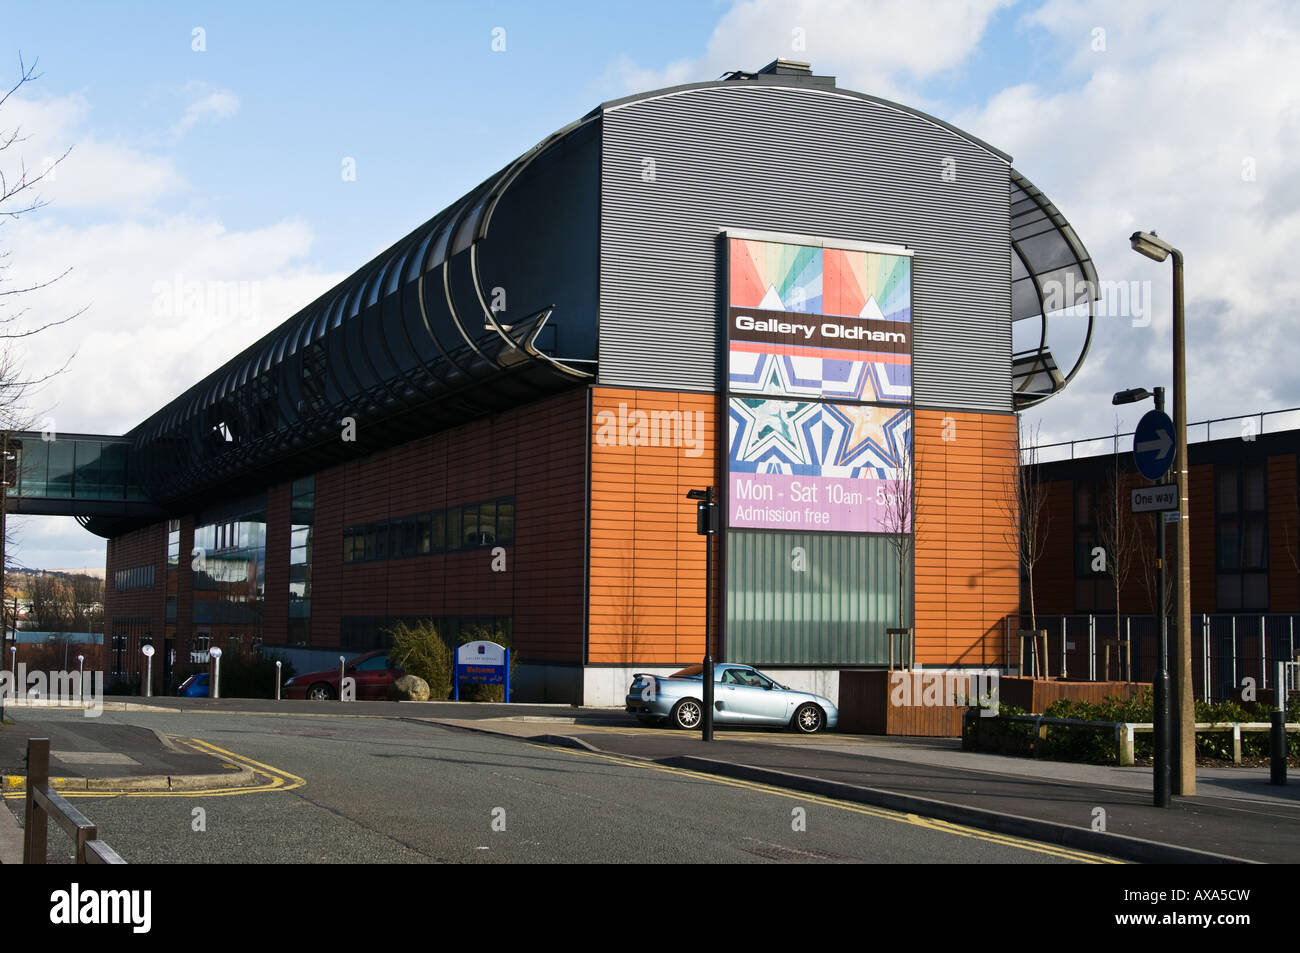 Gallery Oldham - Stock Image